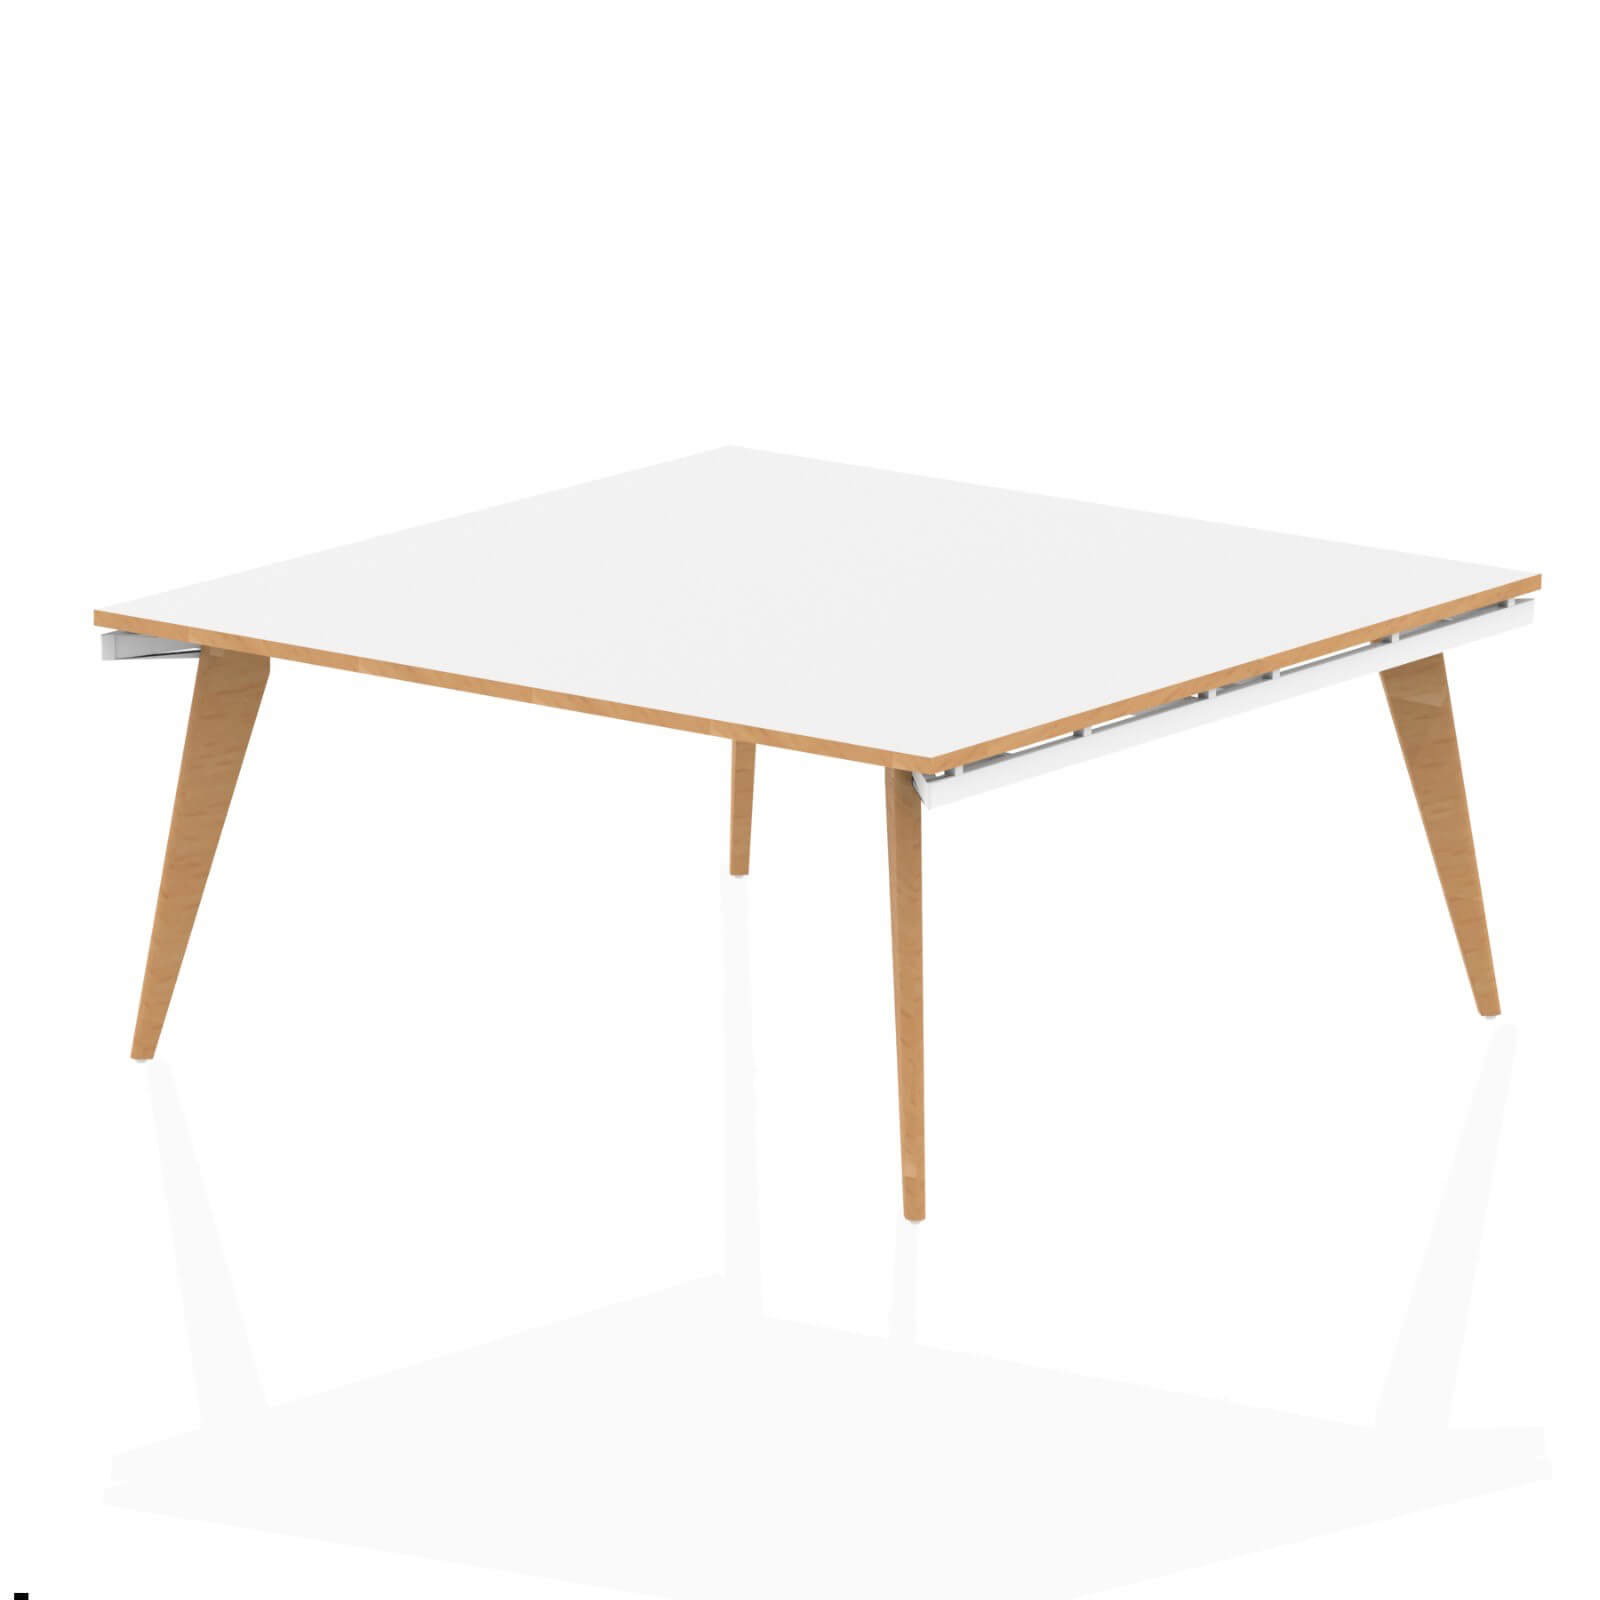 Oslo White Frame Wooden Leg Square Boardroom Table 1600 White With Natural Wood Edge